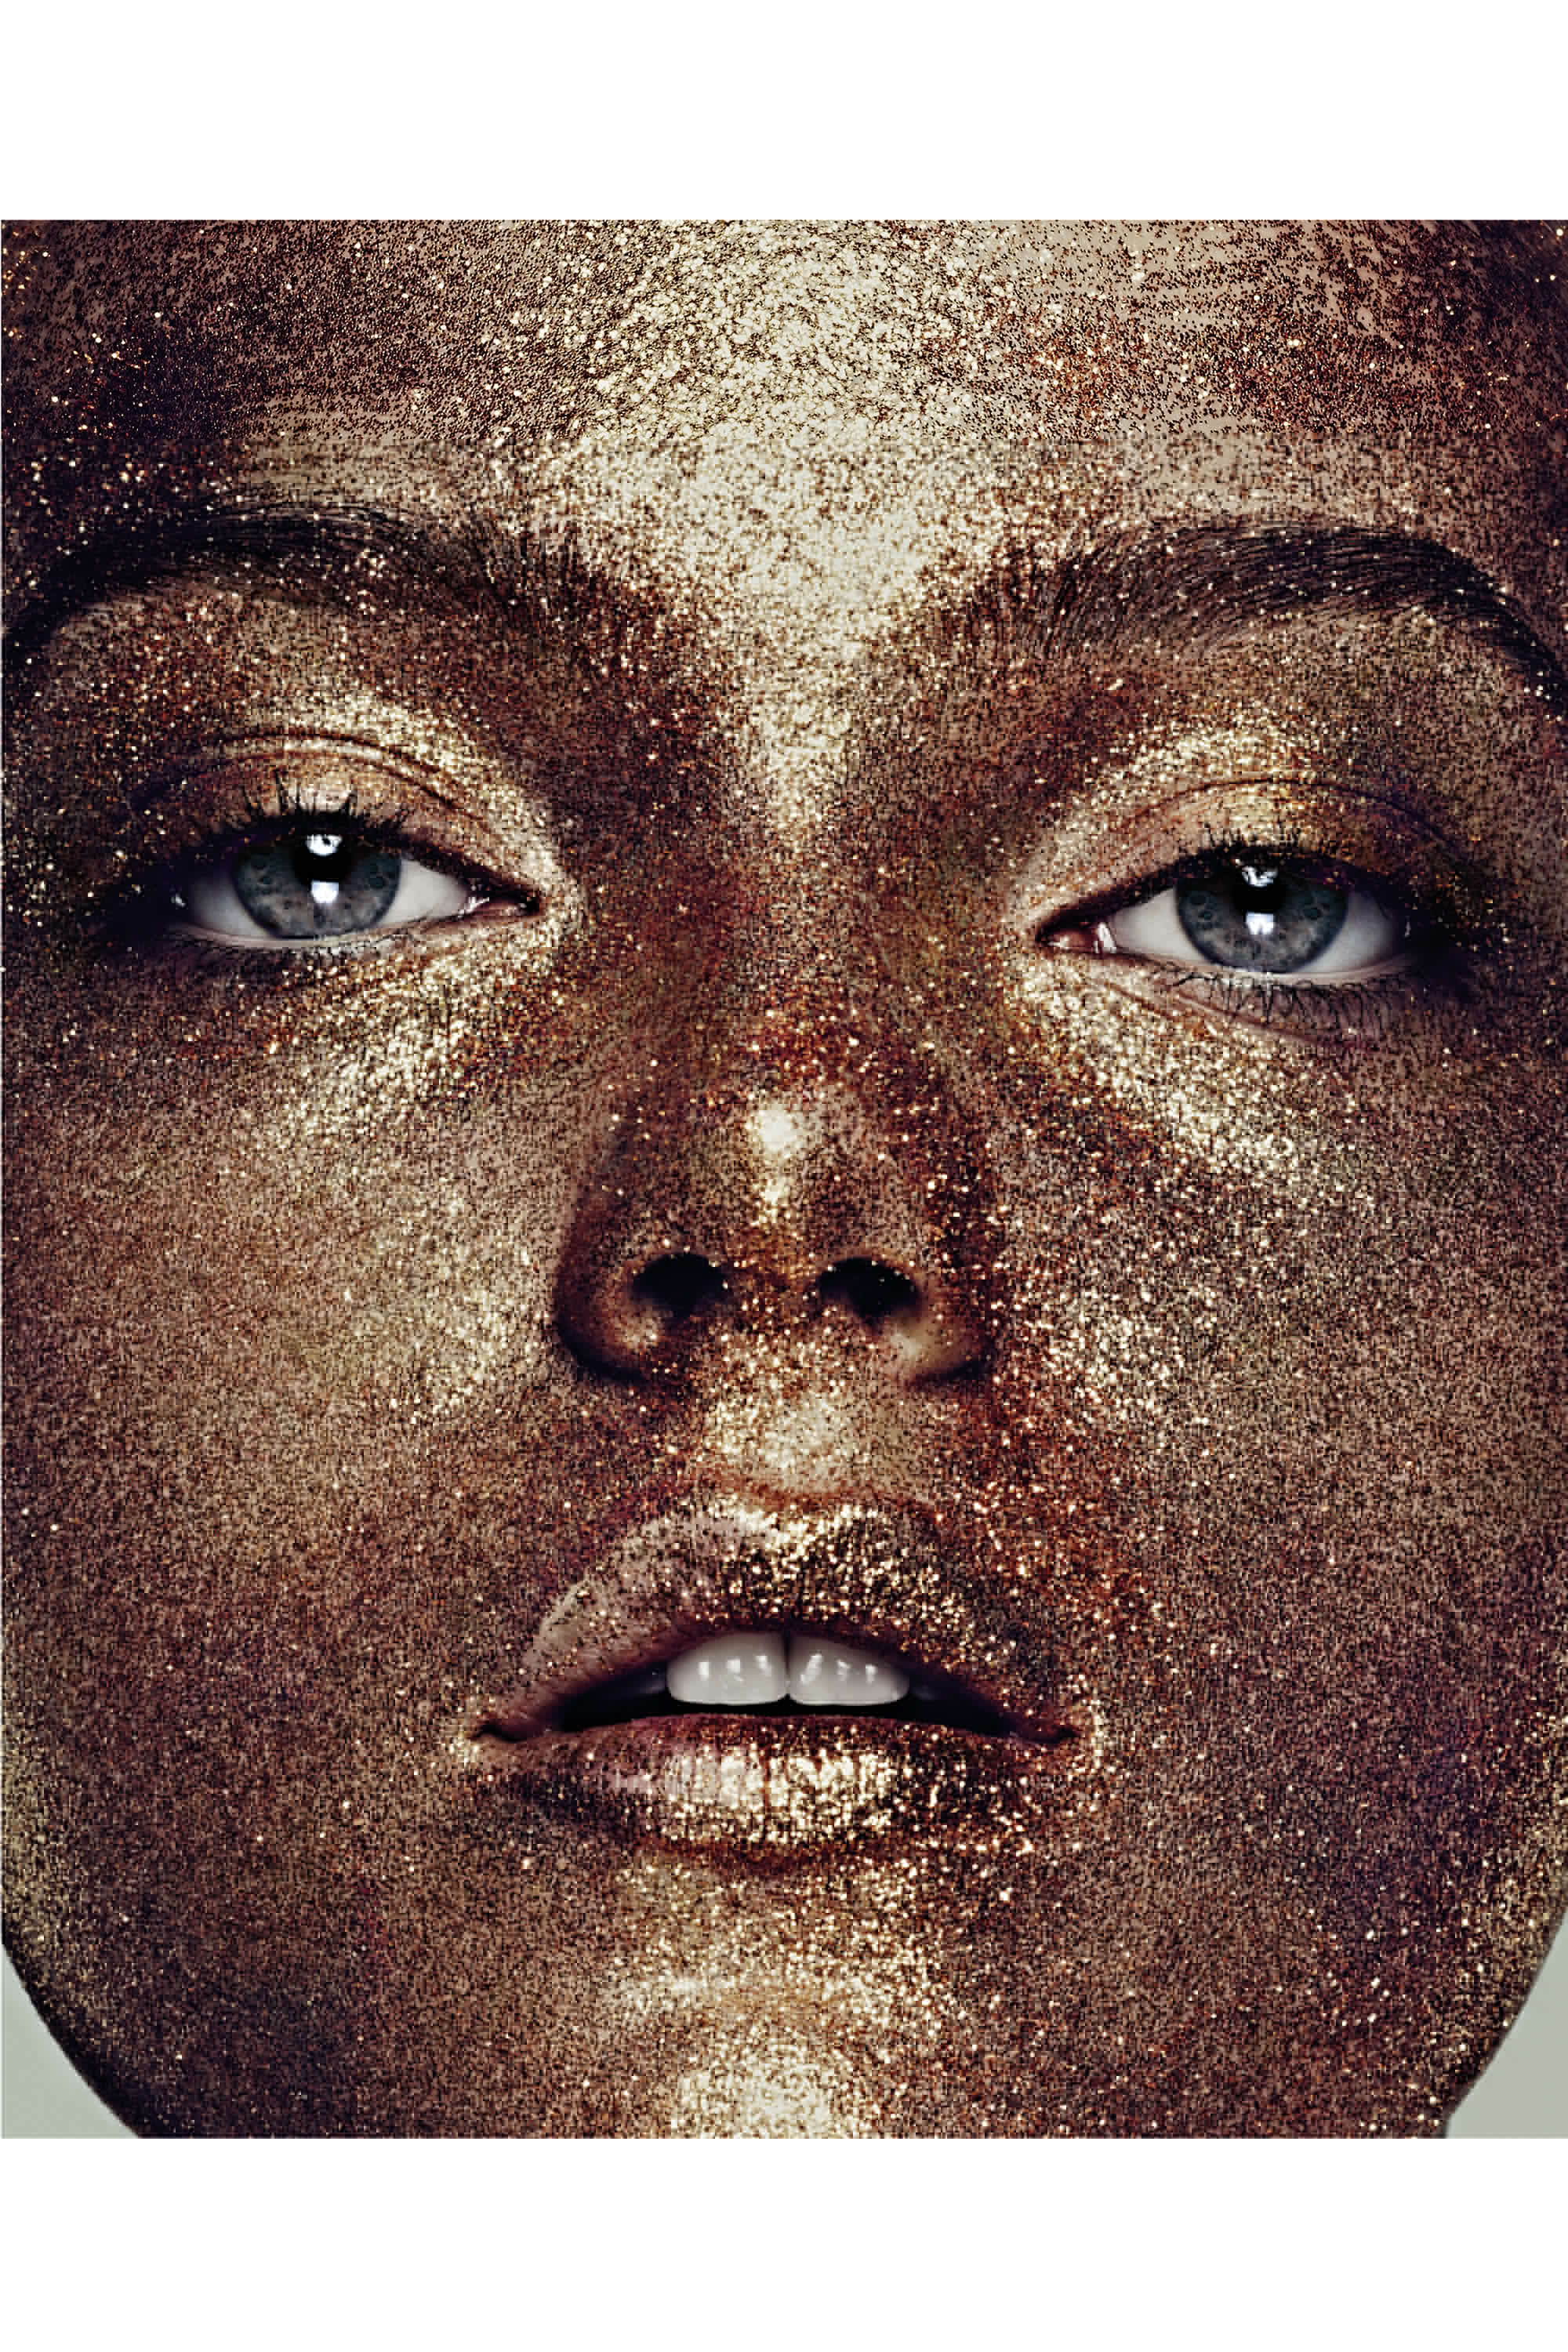 Copper skin care products